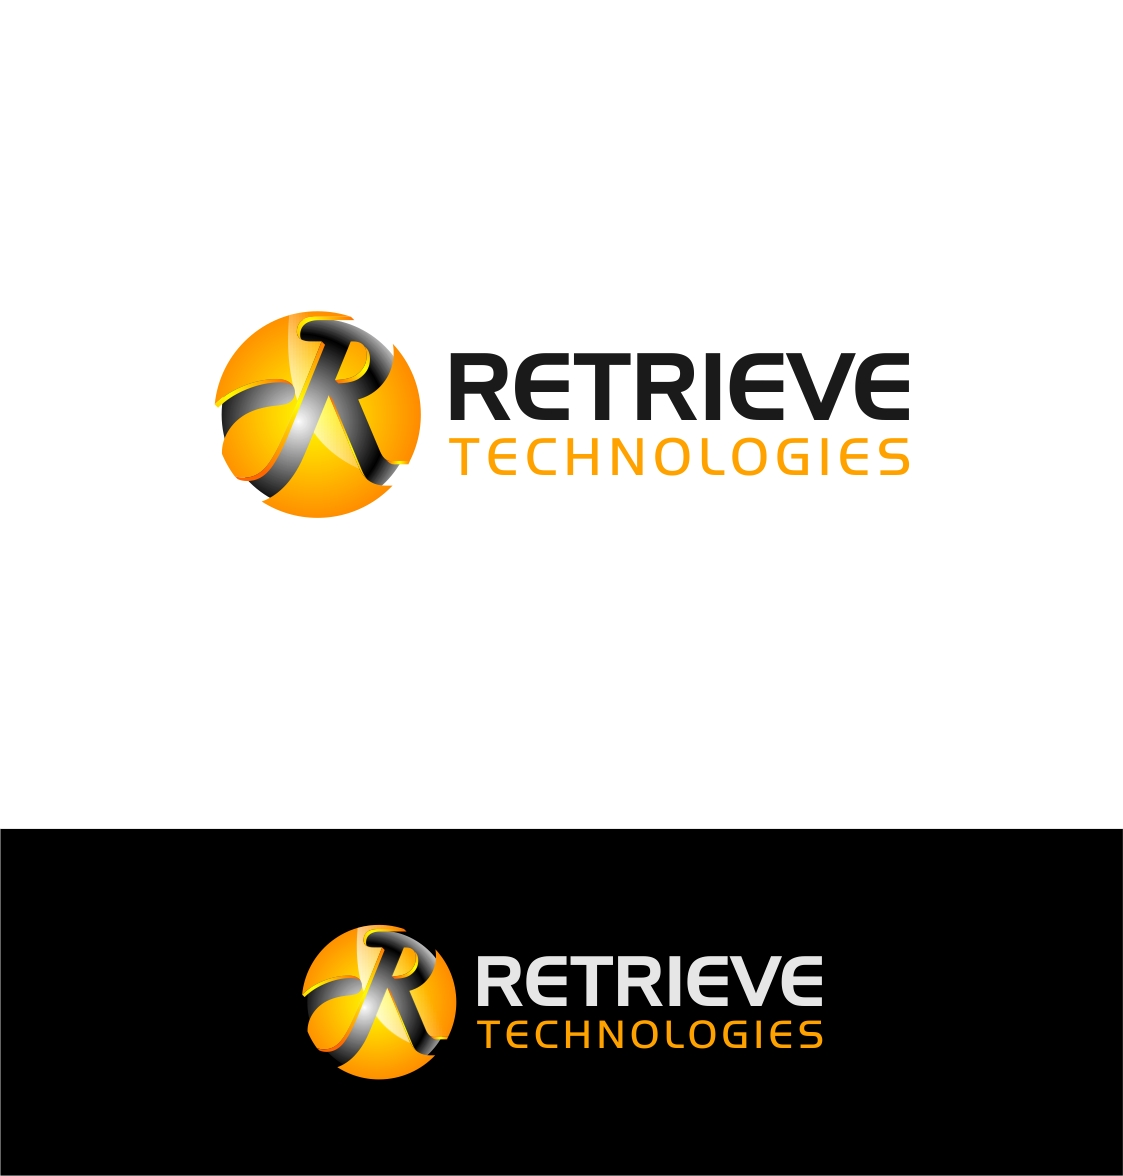 Logo Design by haidu - Entry No. 34 in the Logo Design Contest Artistic Logo Design for Retrieve Technologies.